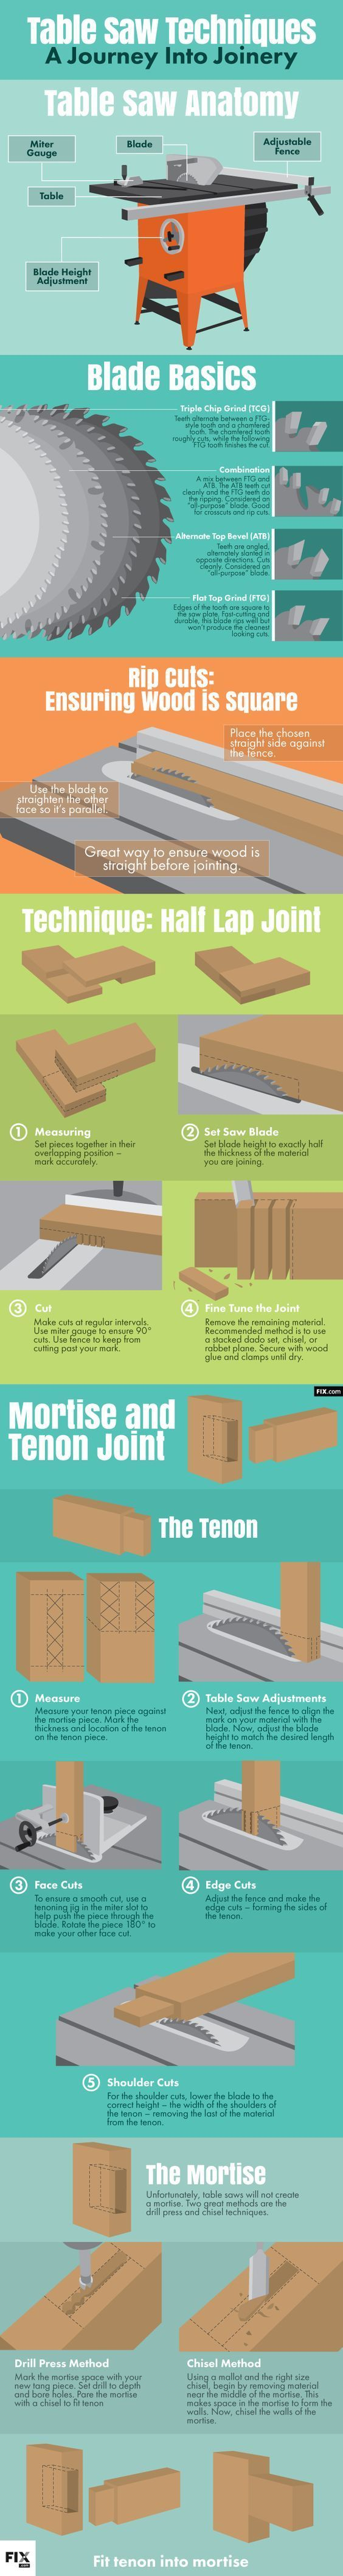 Joining wood can be simple on a table saw. Create seamless, beautiful joints for all your construction projects.::